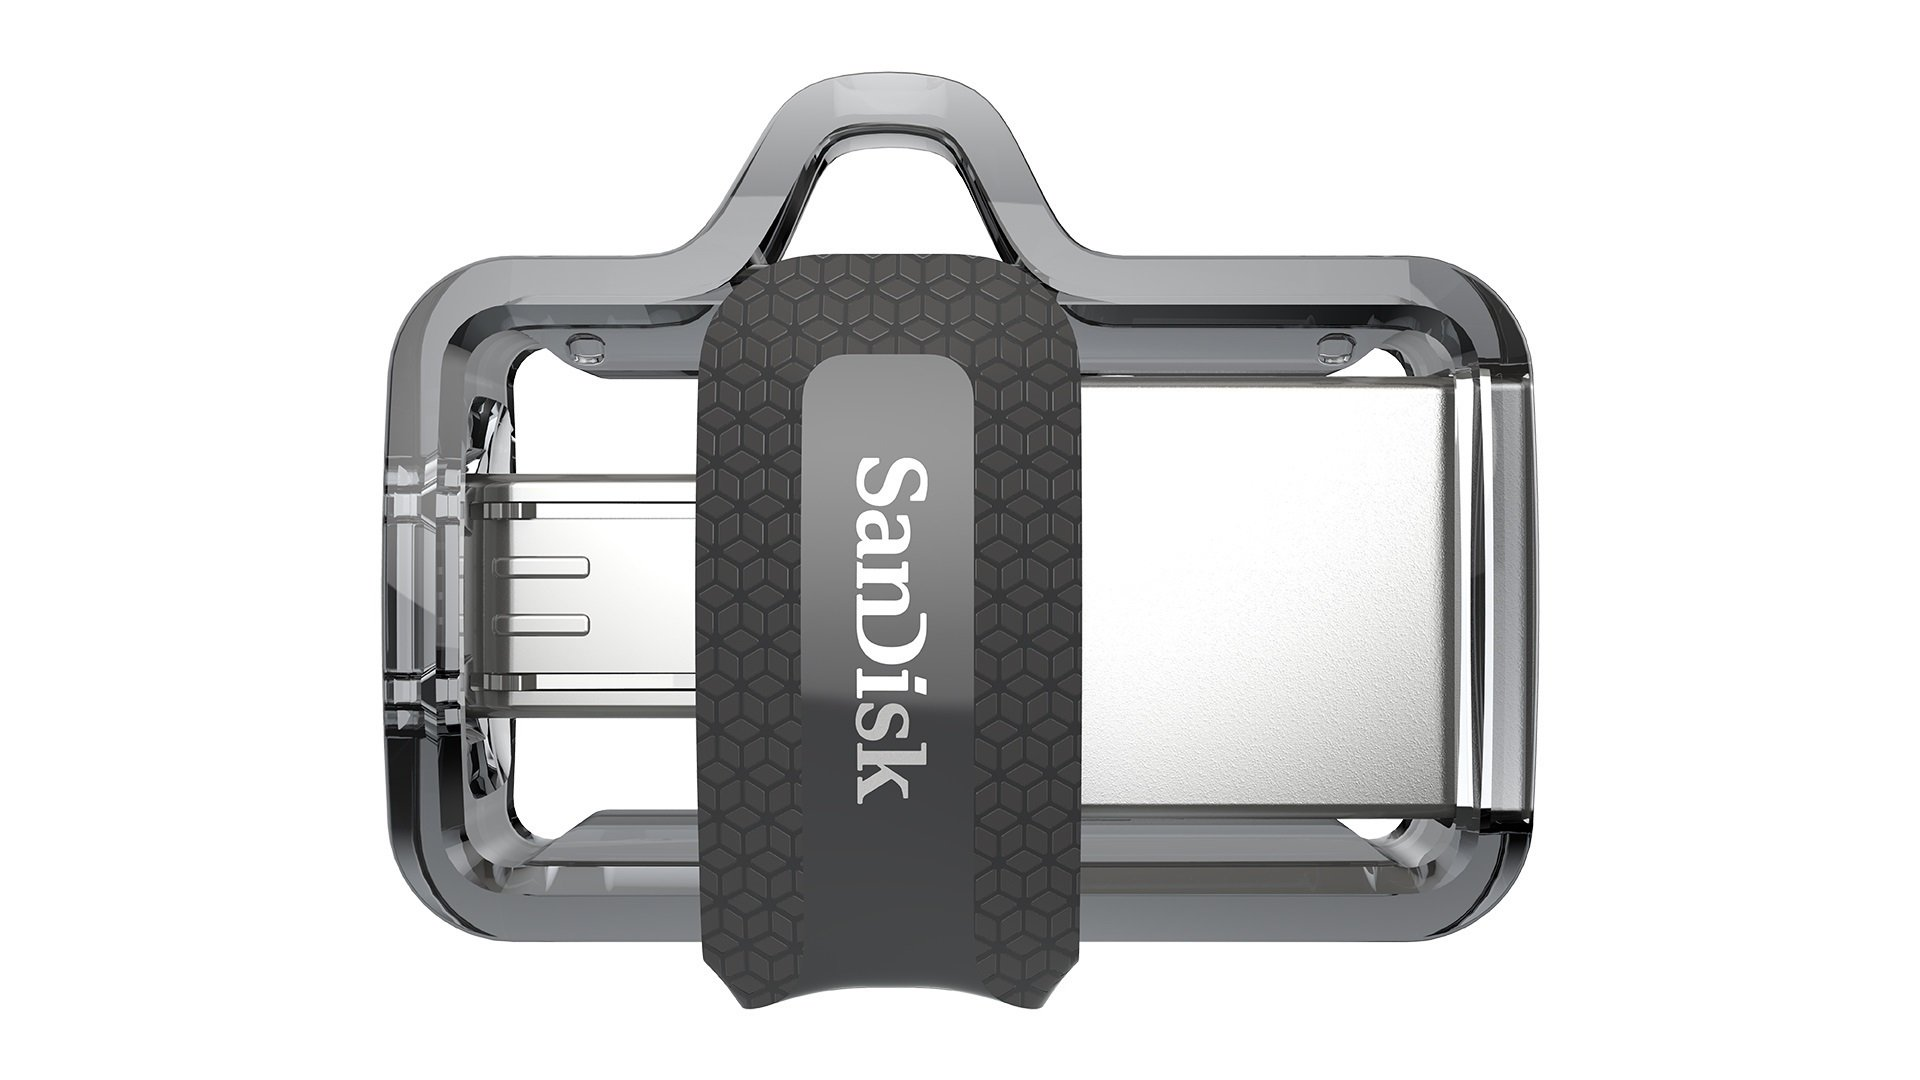 SanDisk Ultra 64GB Dual Drive m3.0 for Android Devices and Computers (SDDD3-064G-G46) by SanDisk (Image #5)